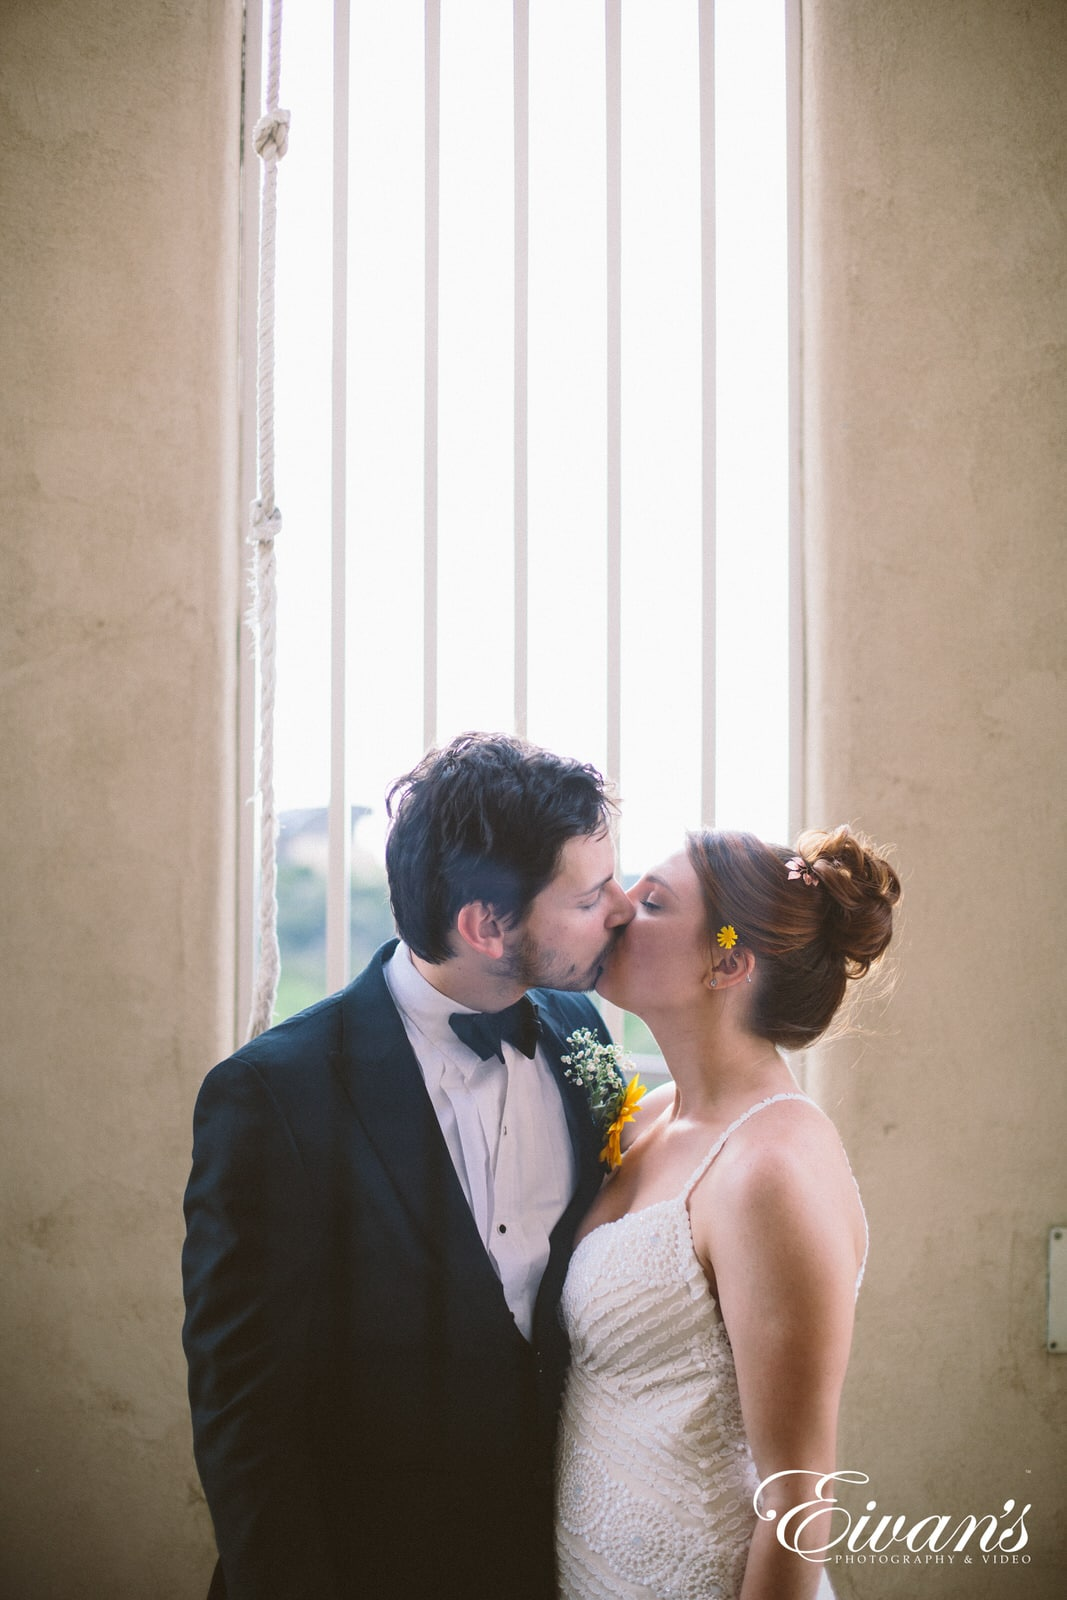 man in black suit kissing woman in white sleeveless dress